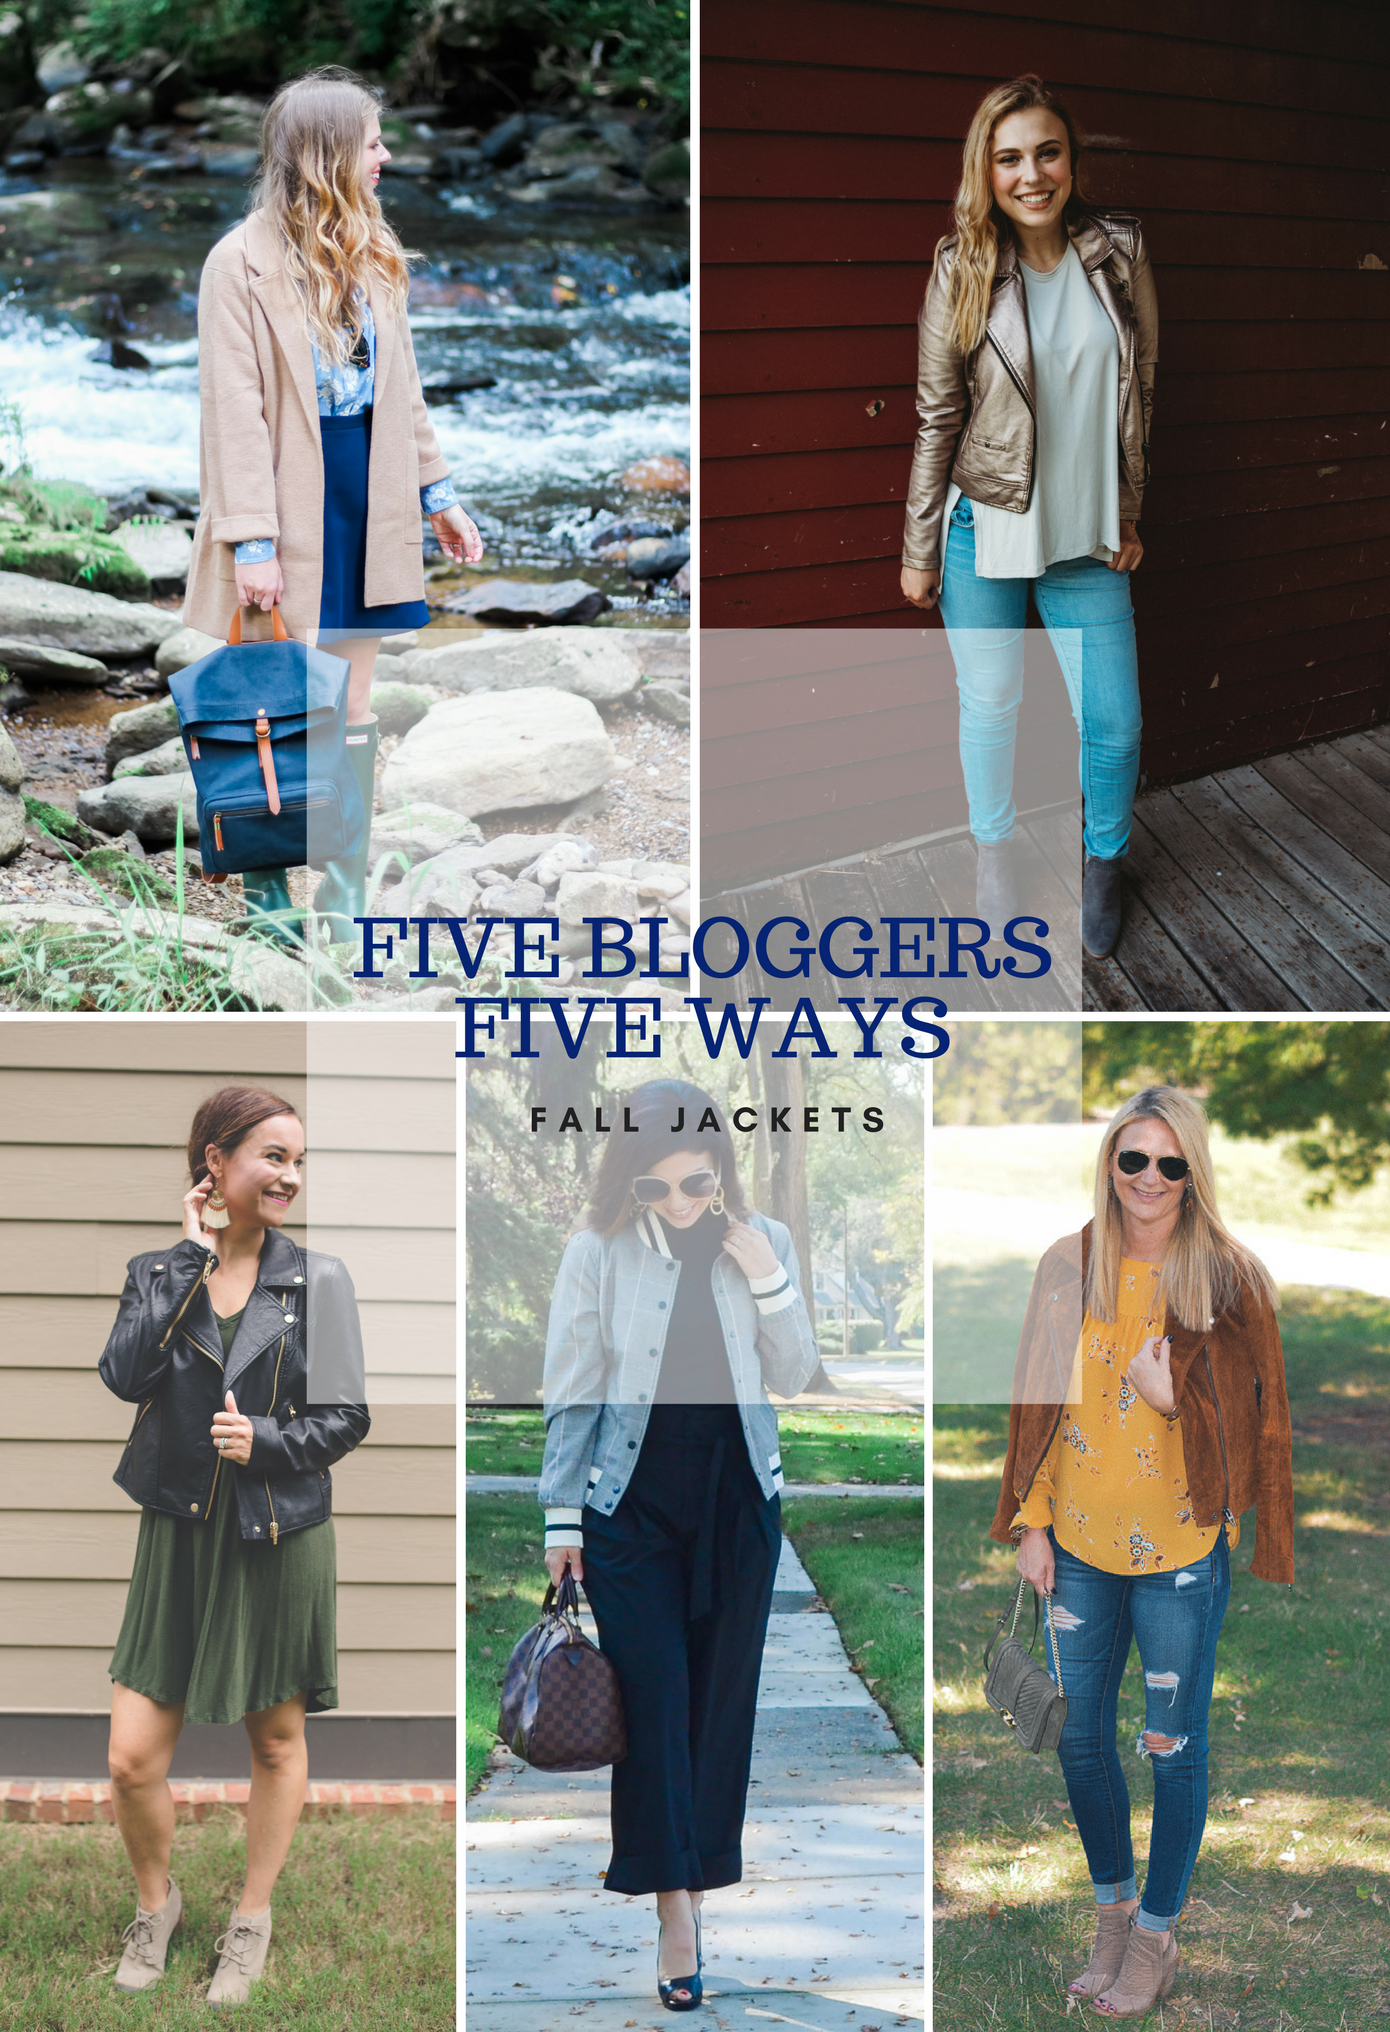 Sweater Blazer | Jackets for Fall | Louella Reese Life & Style Blog